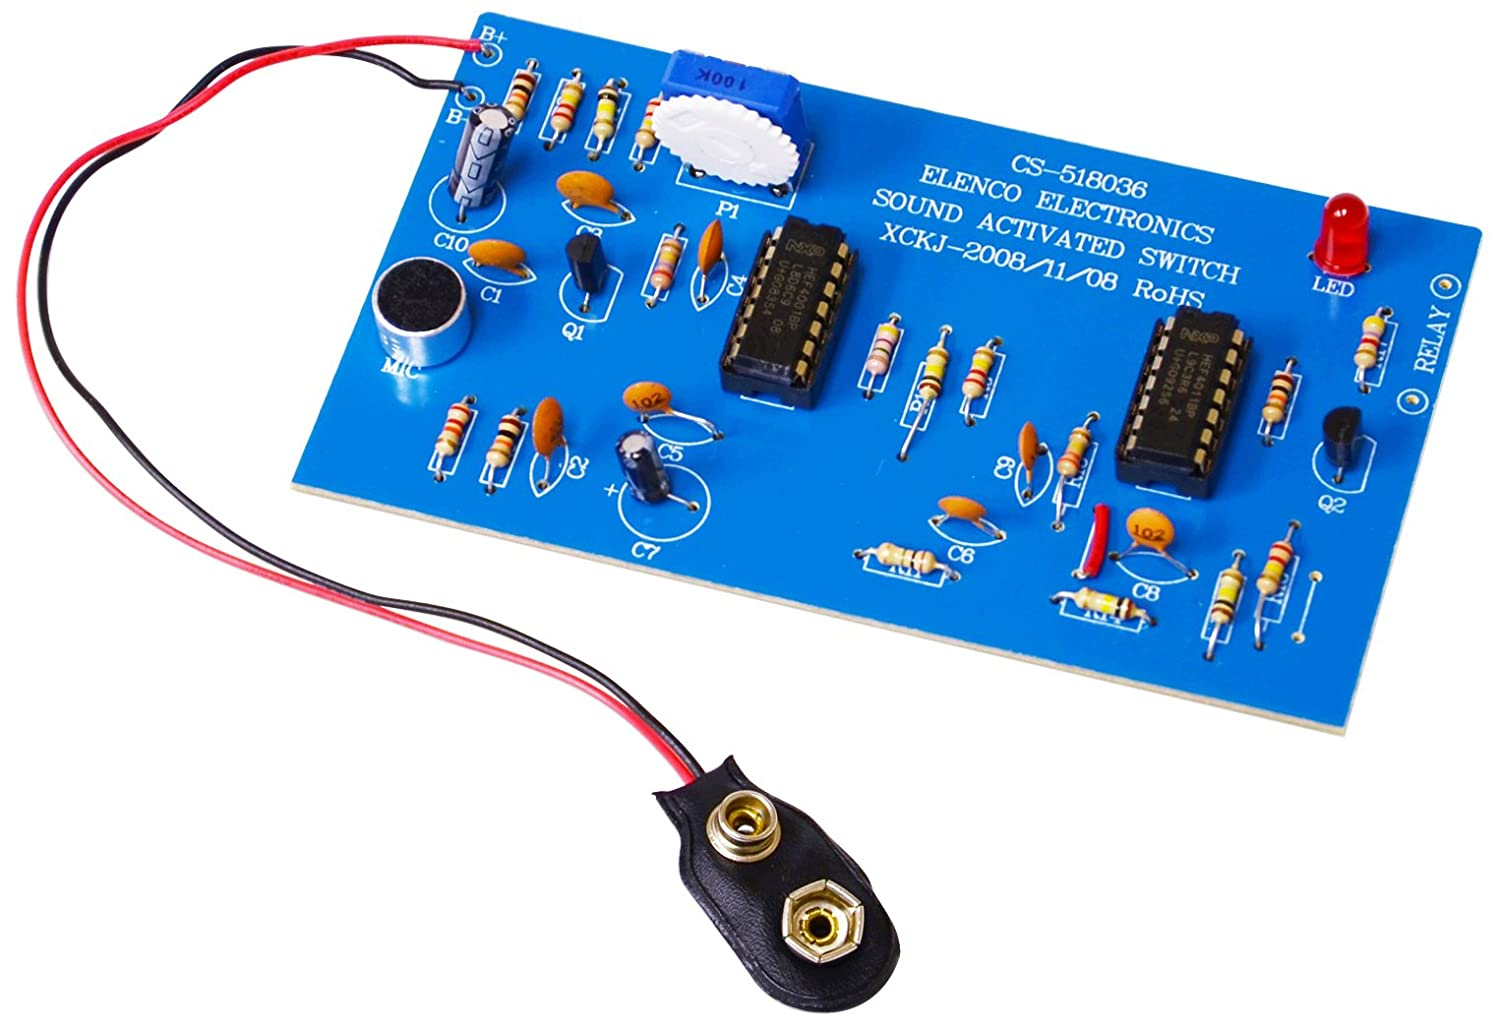 Amazon.com: Elenco Sound Activated Switch Soldering Kit with Iron and  Solder: Toys & Games